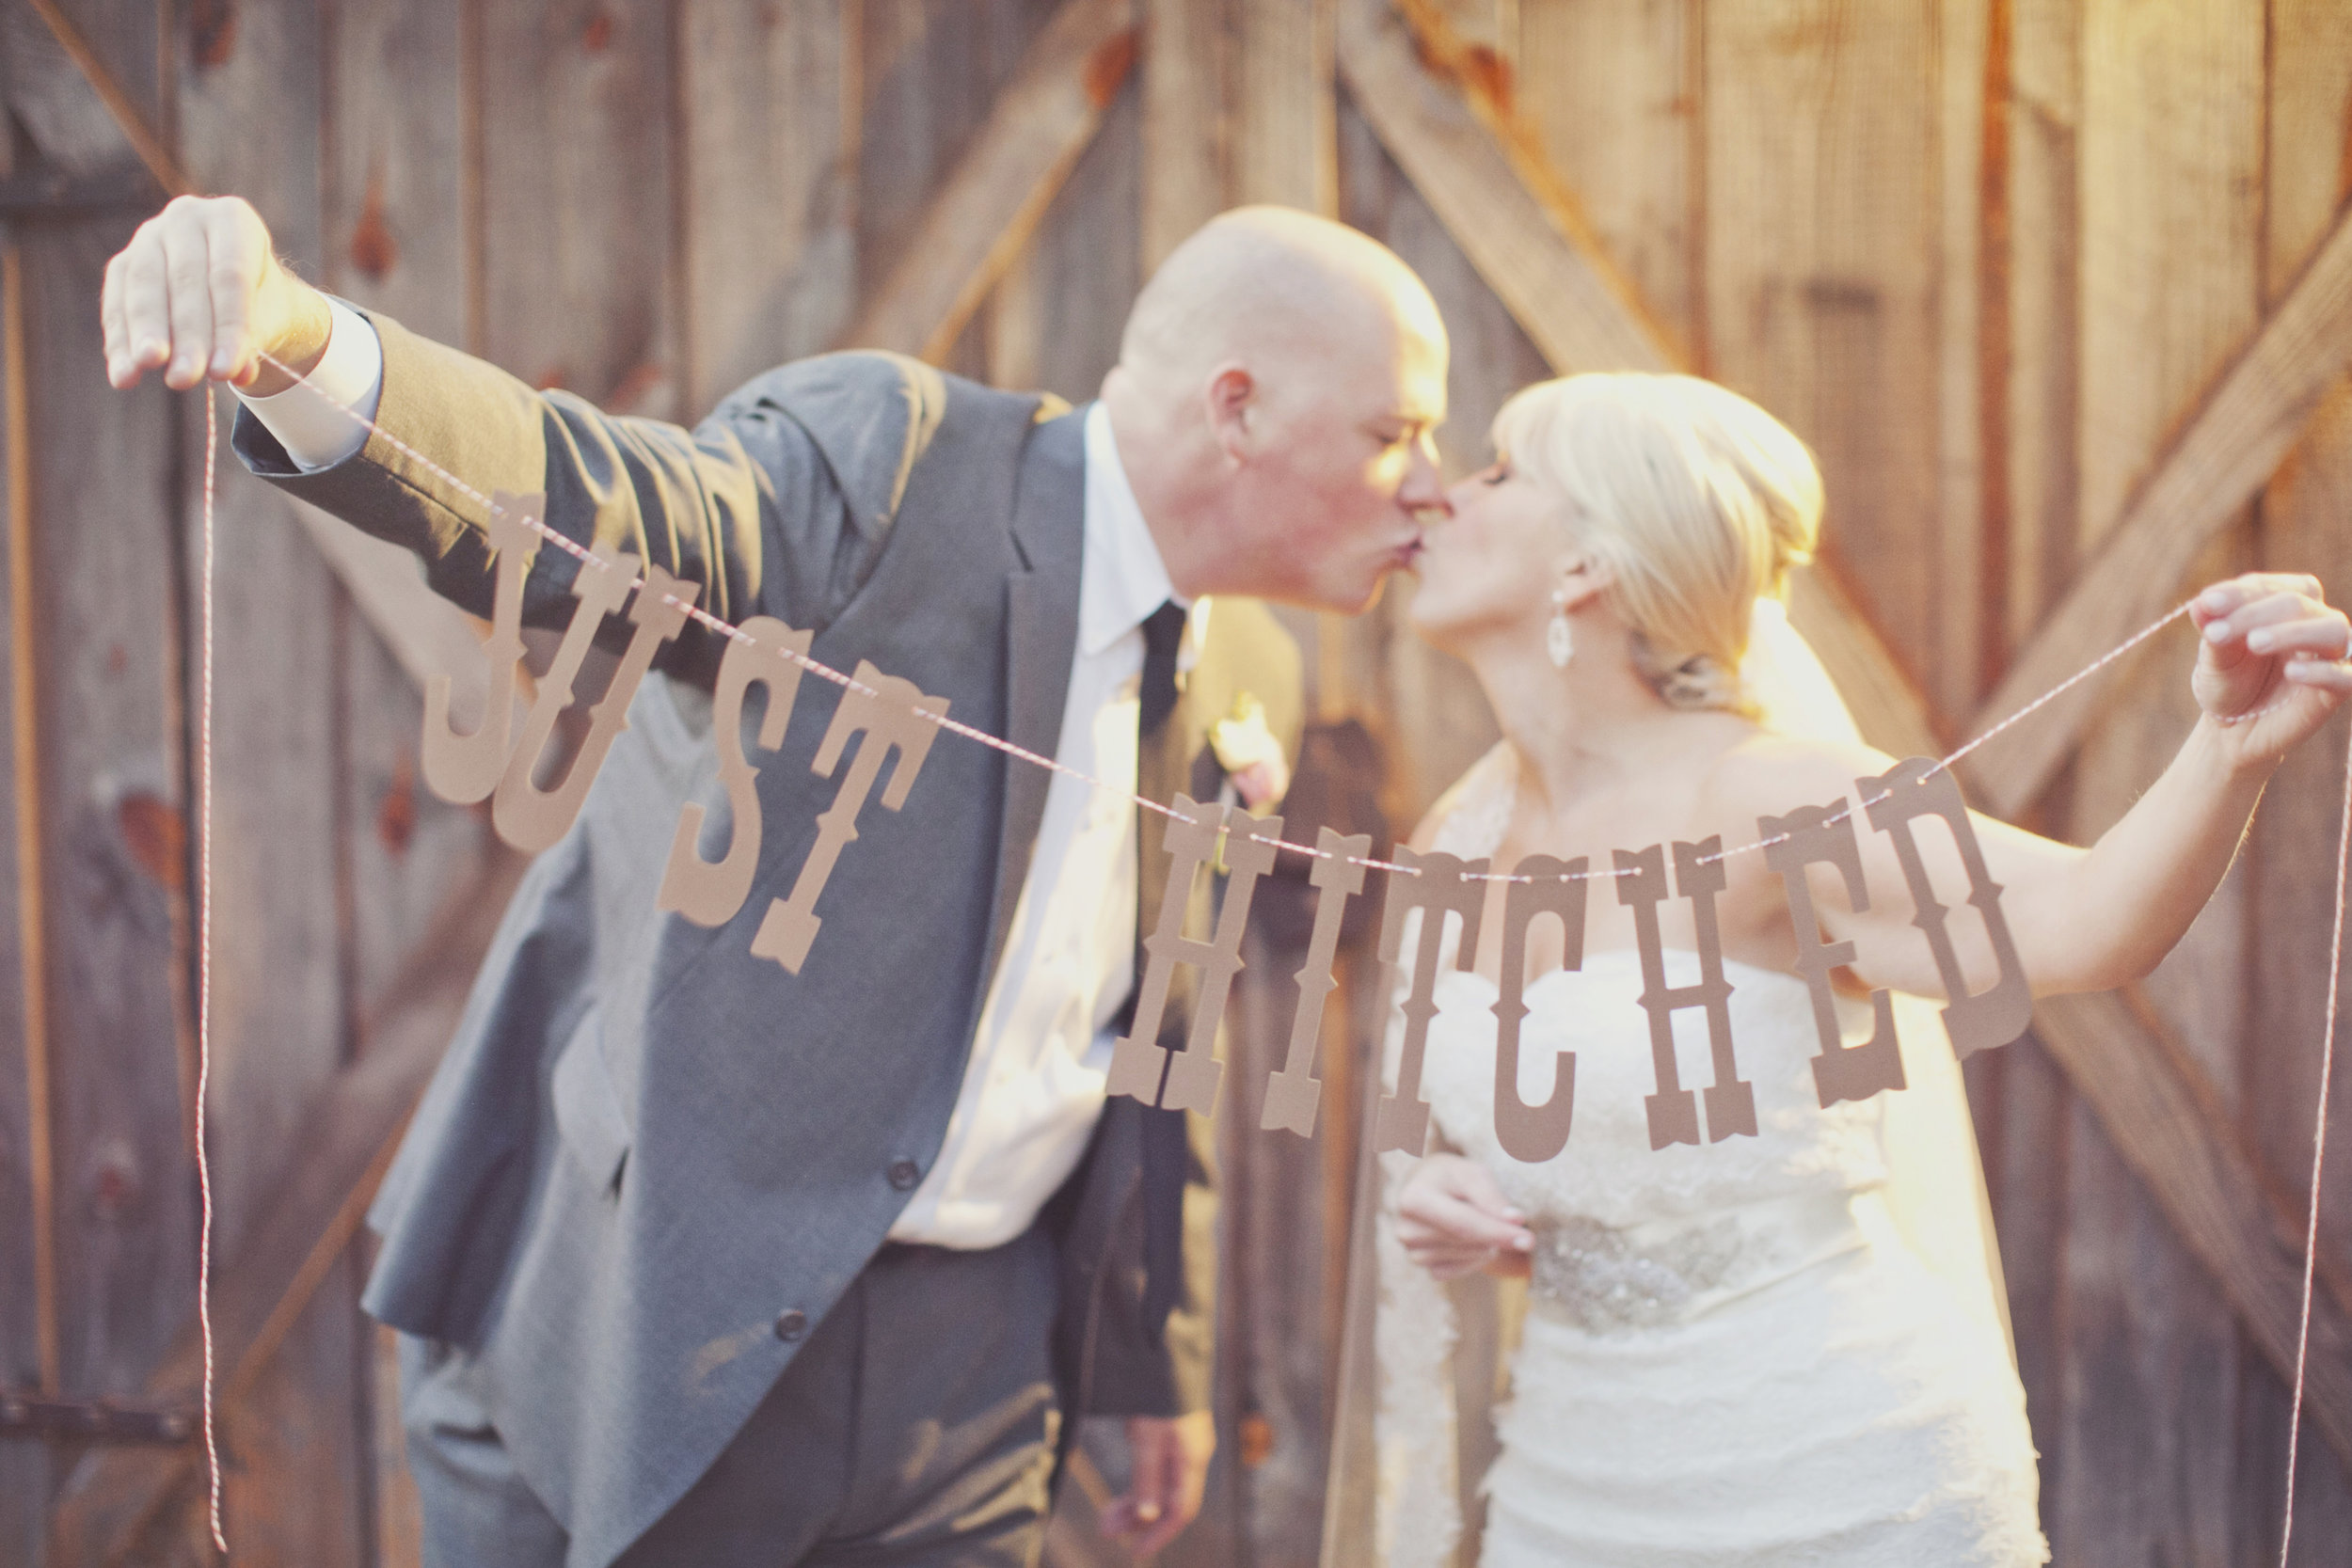 Simply-Charming-Socials_Atlanta-Wedding-Planner_Our-Labor-Of-Love_Maggie-and-Greg_22.jpg